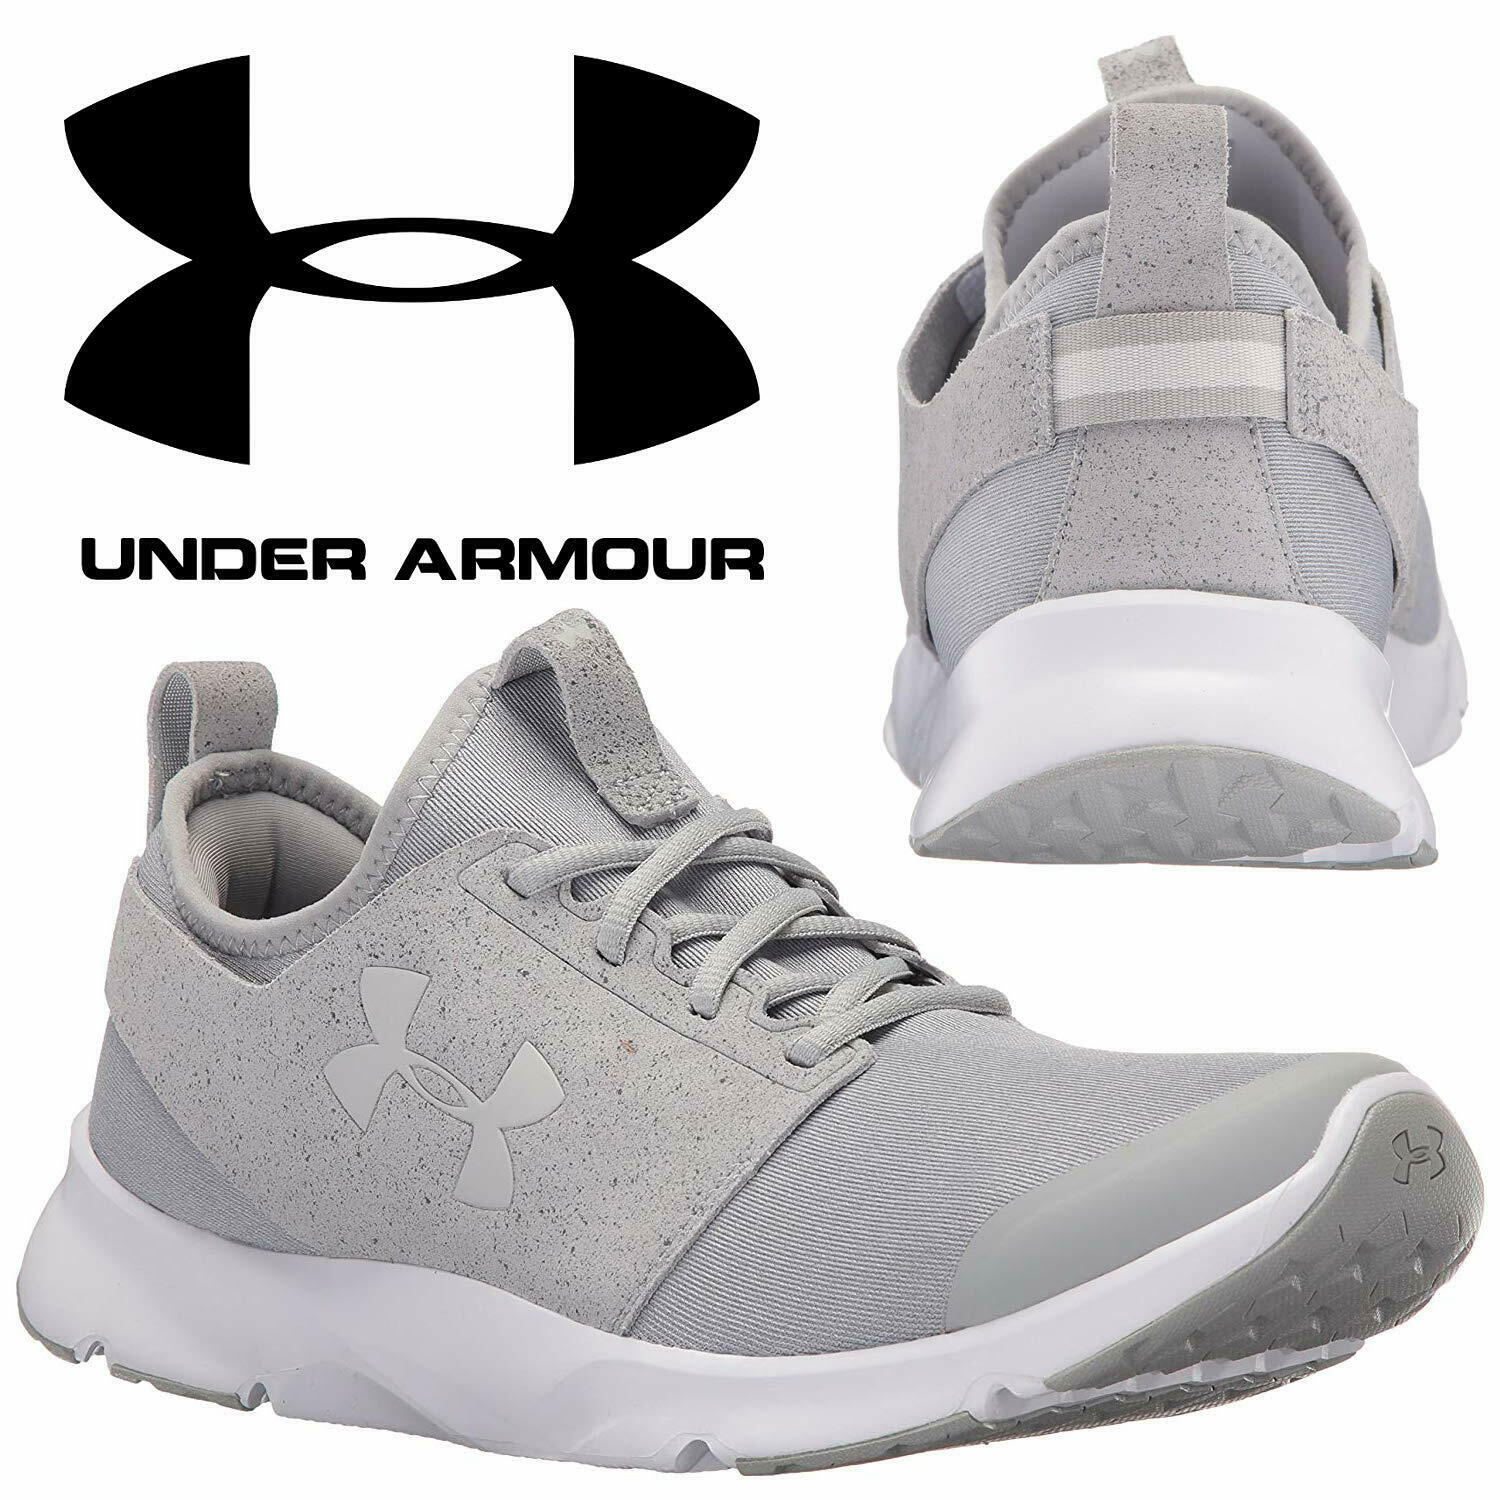 Under Armour Mens Drift Rn Mineral Low Top Lace Up Walking Shoes